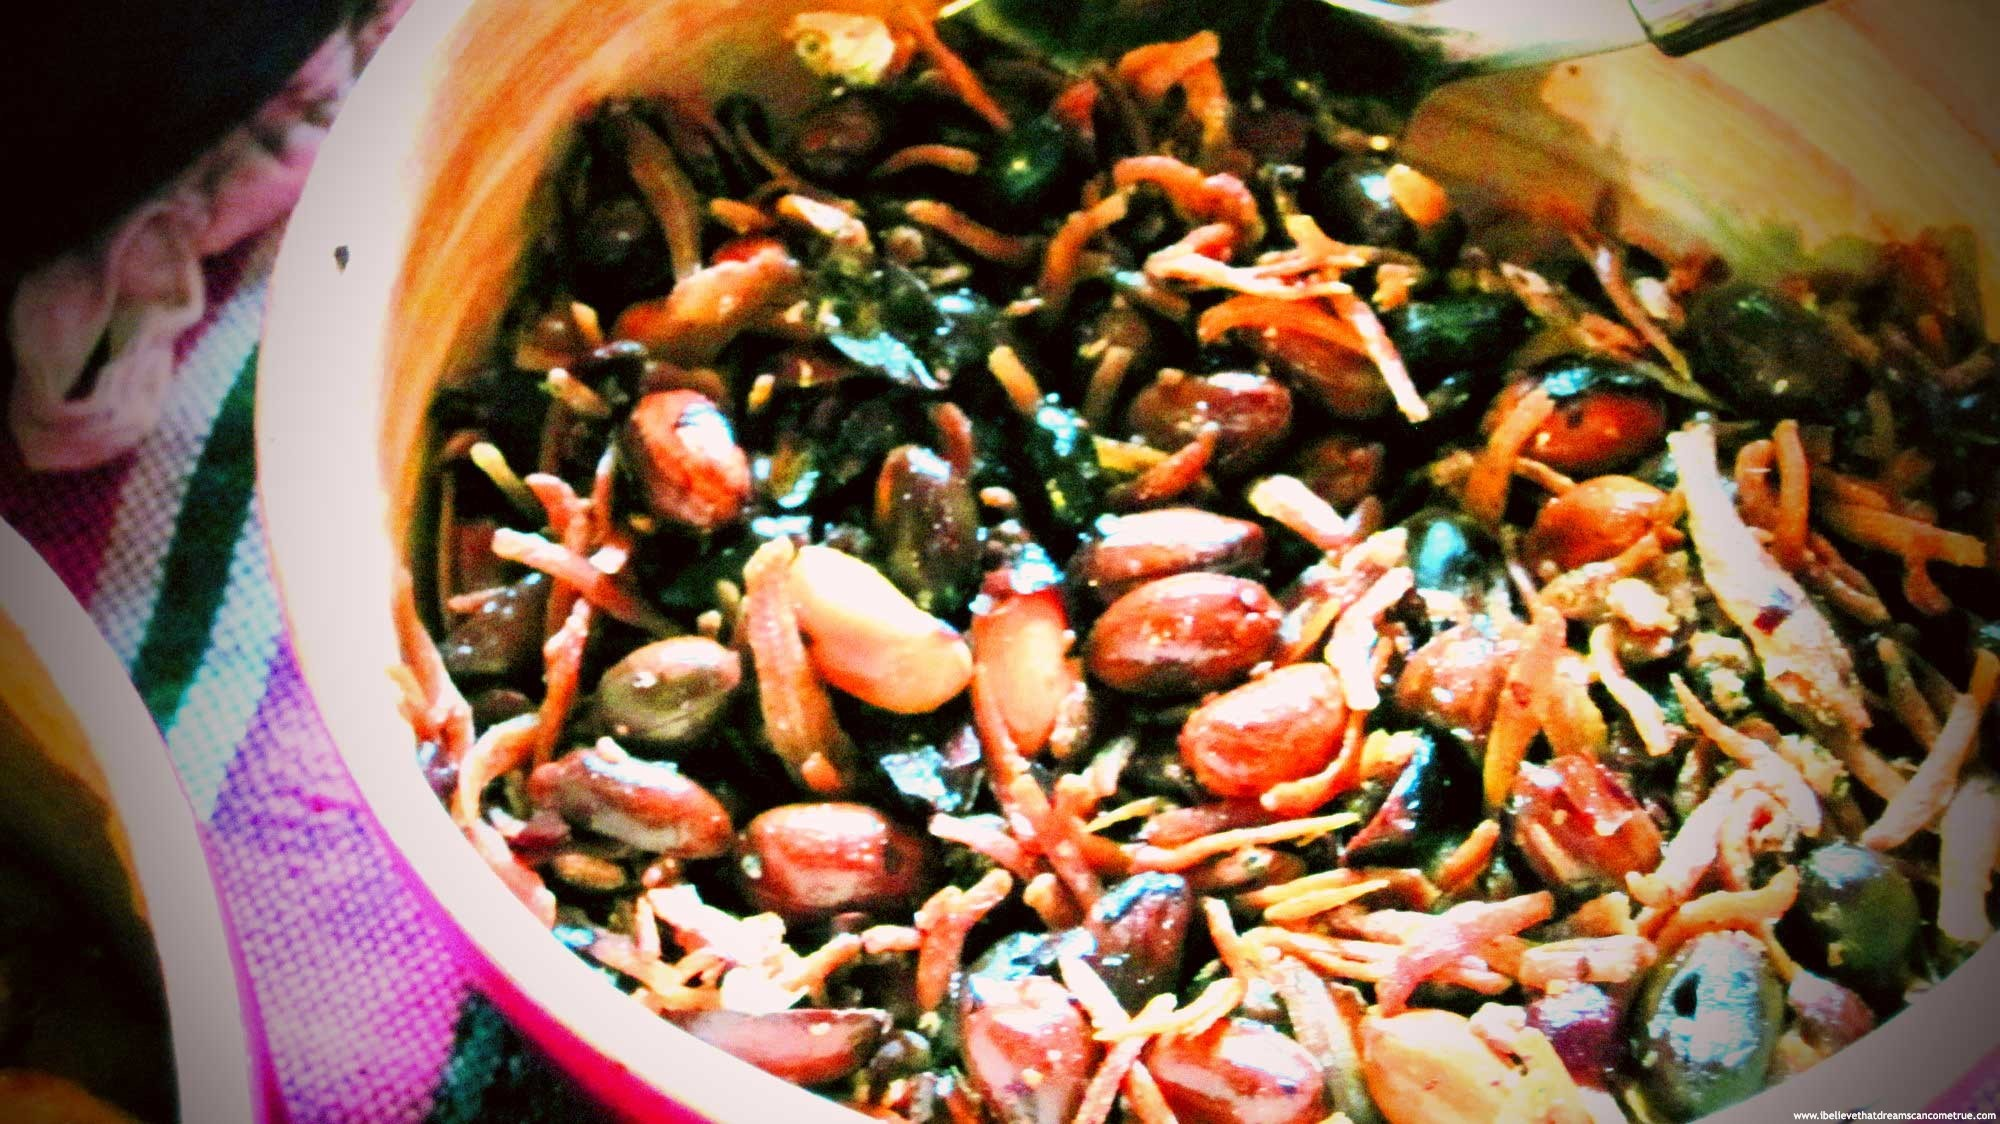 Ikan bilis (anchovies) with peanuts